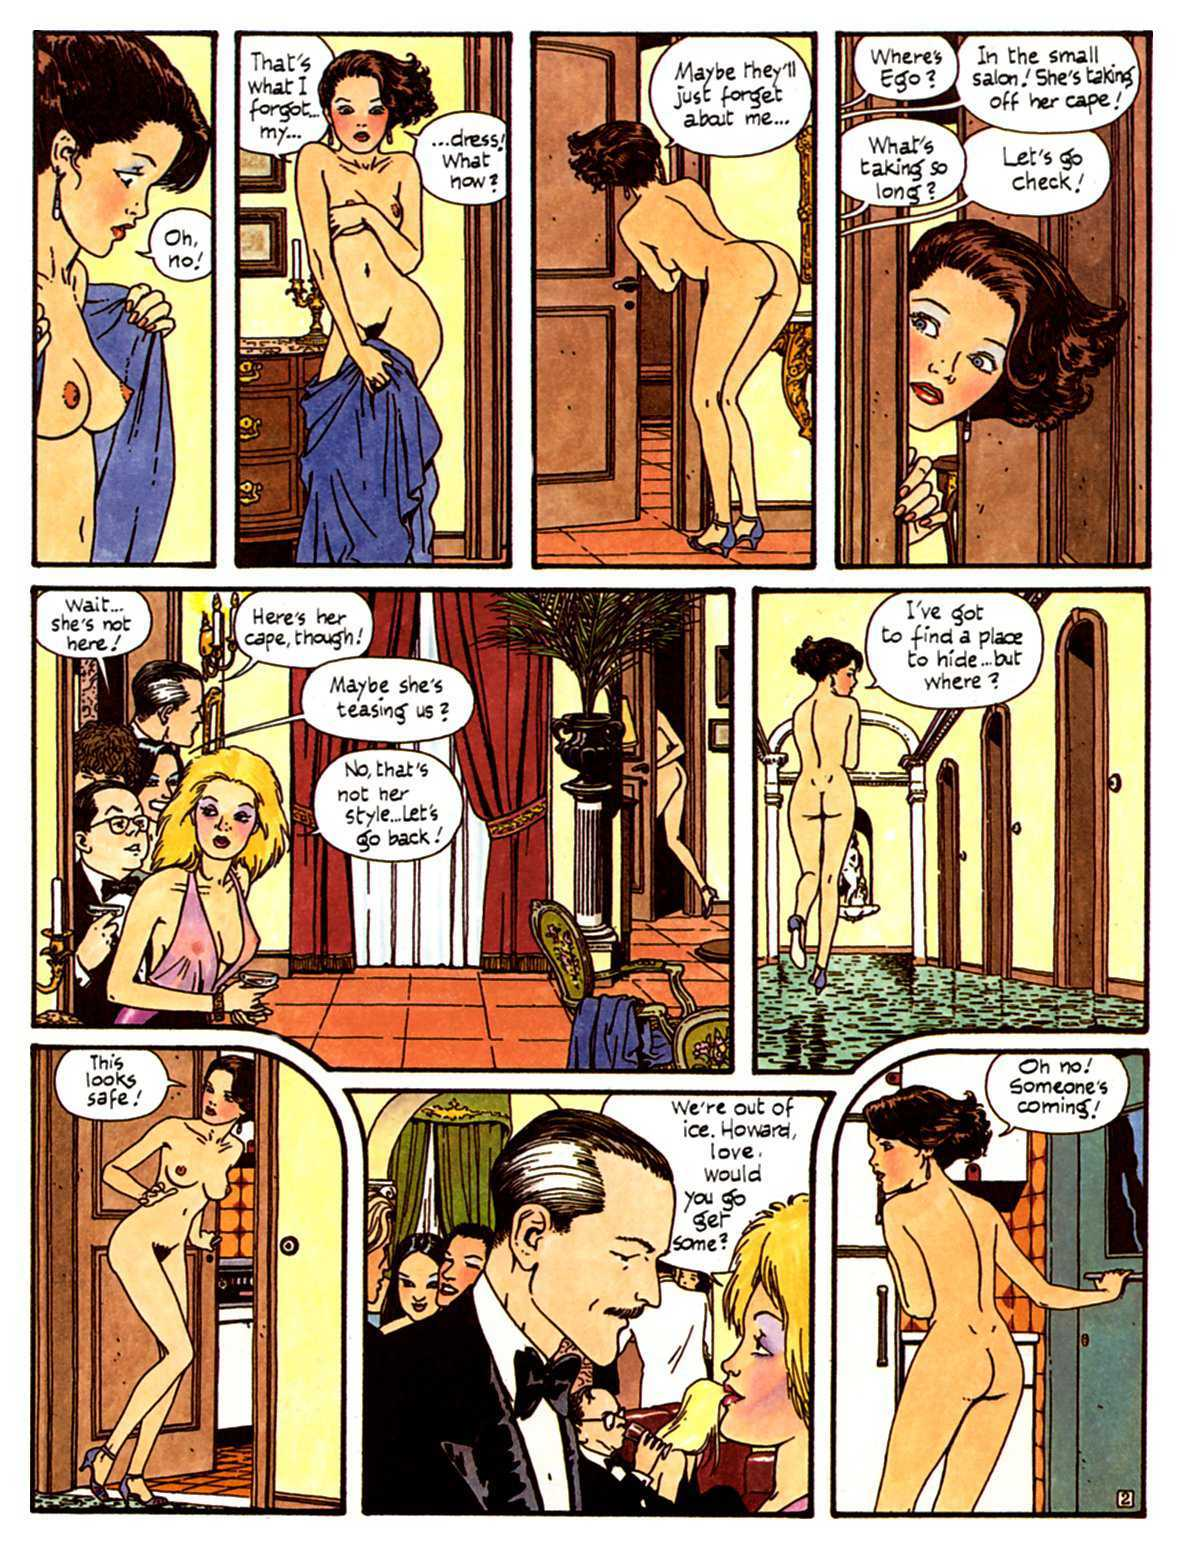 Little Ego16 free sex comic